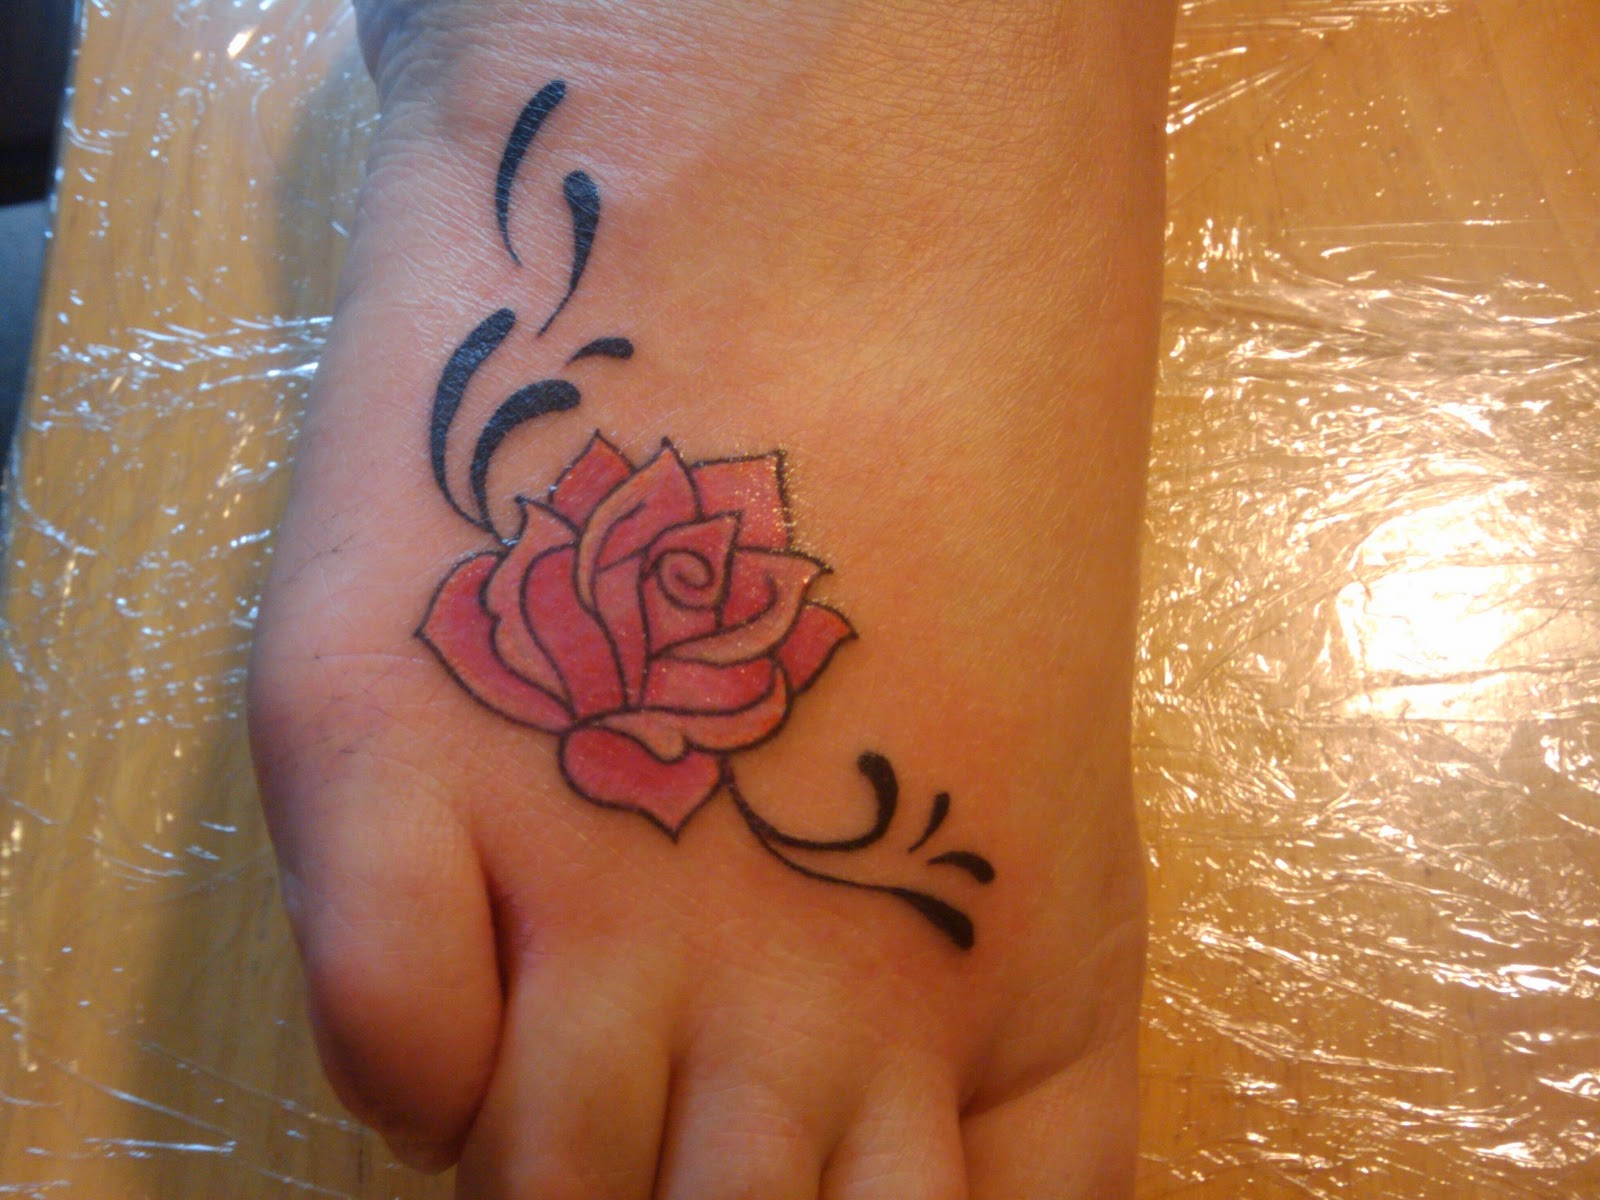 Rose tattoos designs ideas and meaning tattoos for you for Tattoo ideas for foot